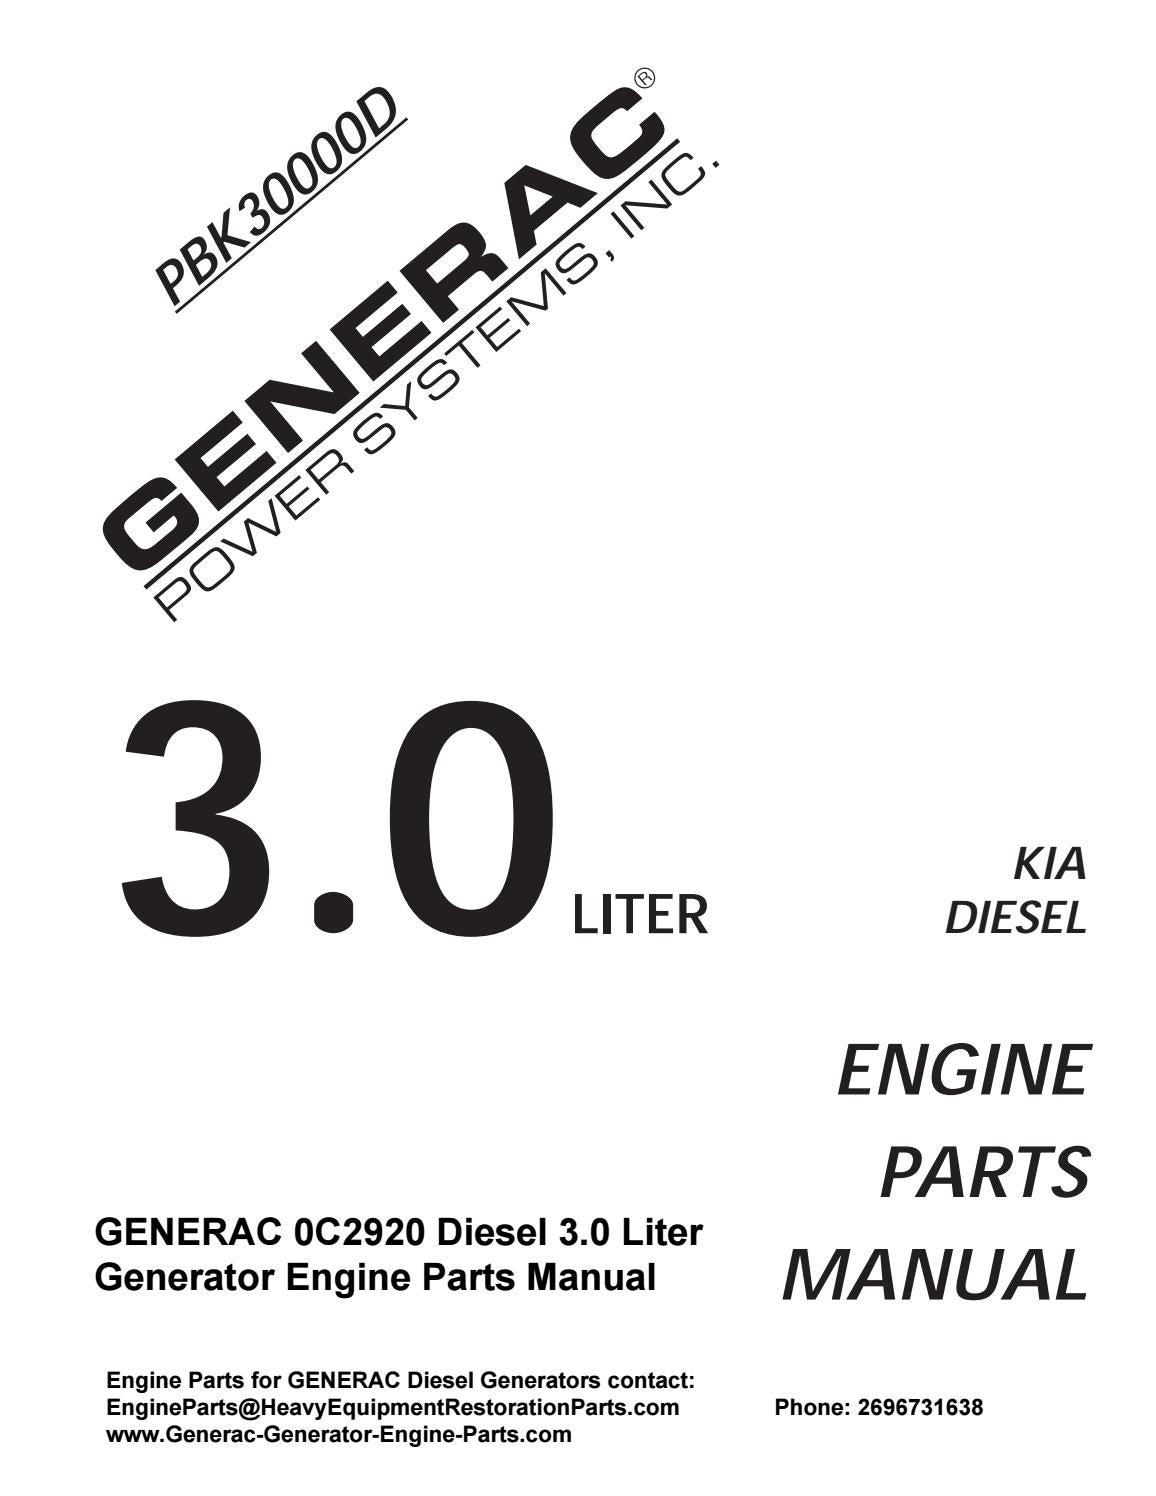 Generac 0c2920 Diesel 3 0 Liter Engine Parts Manual By